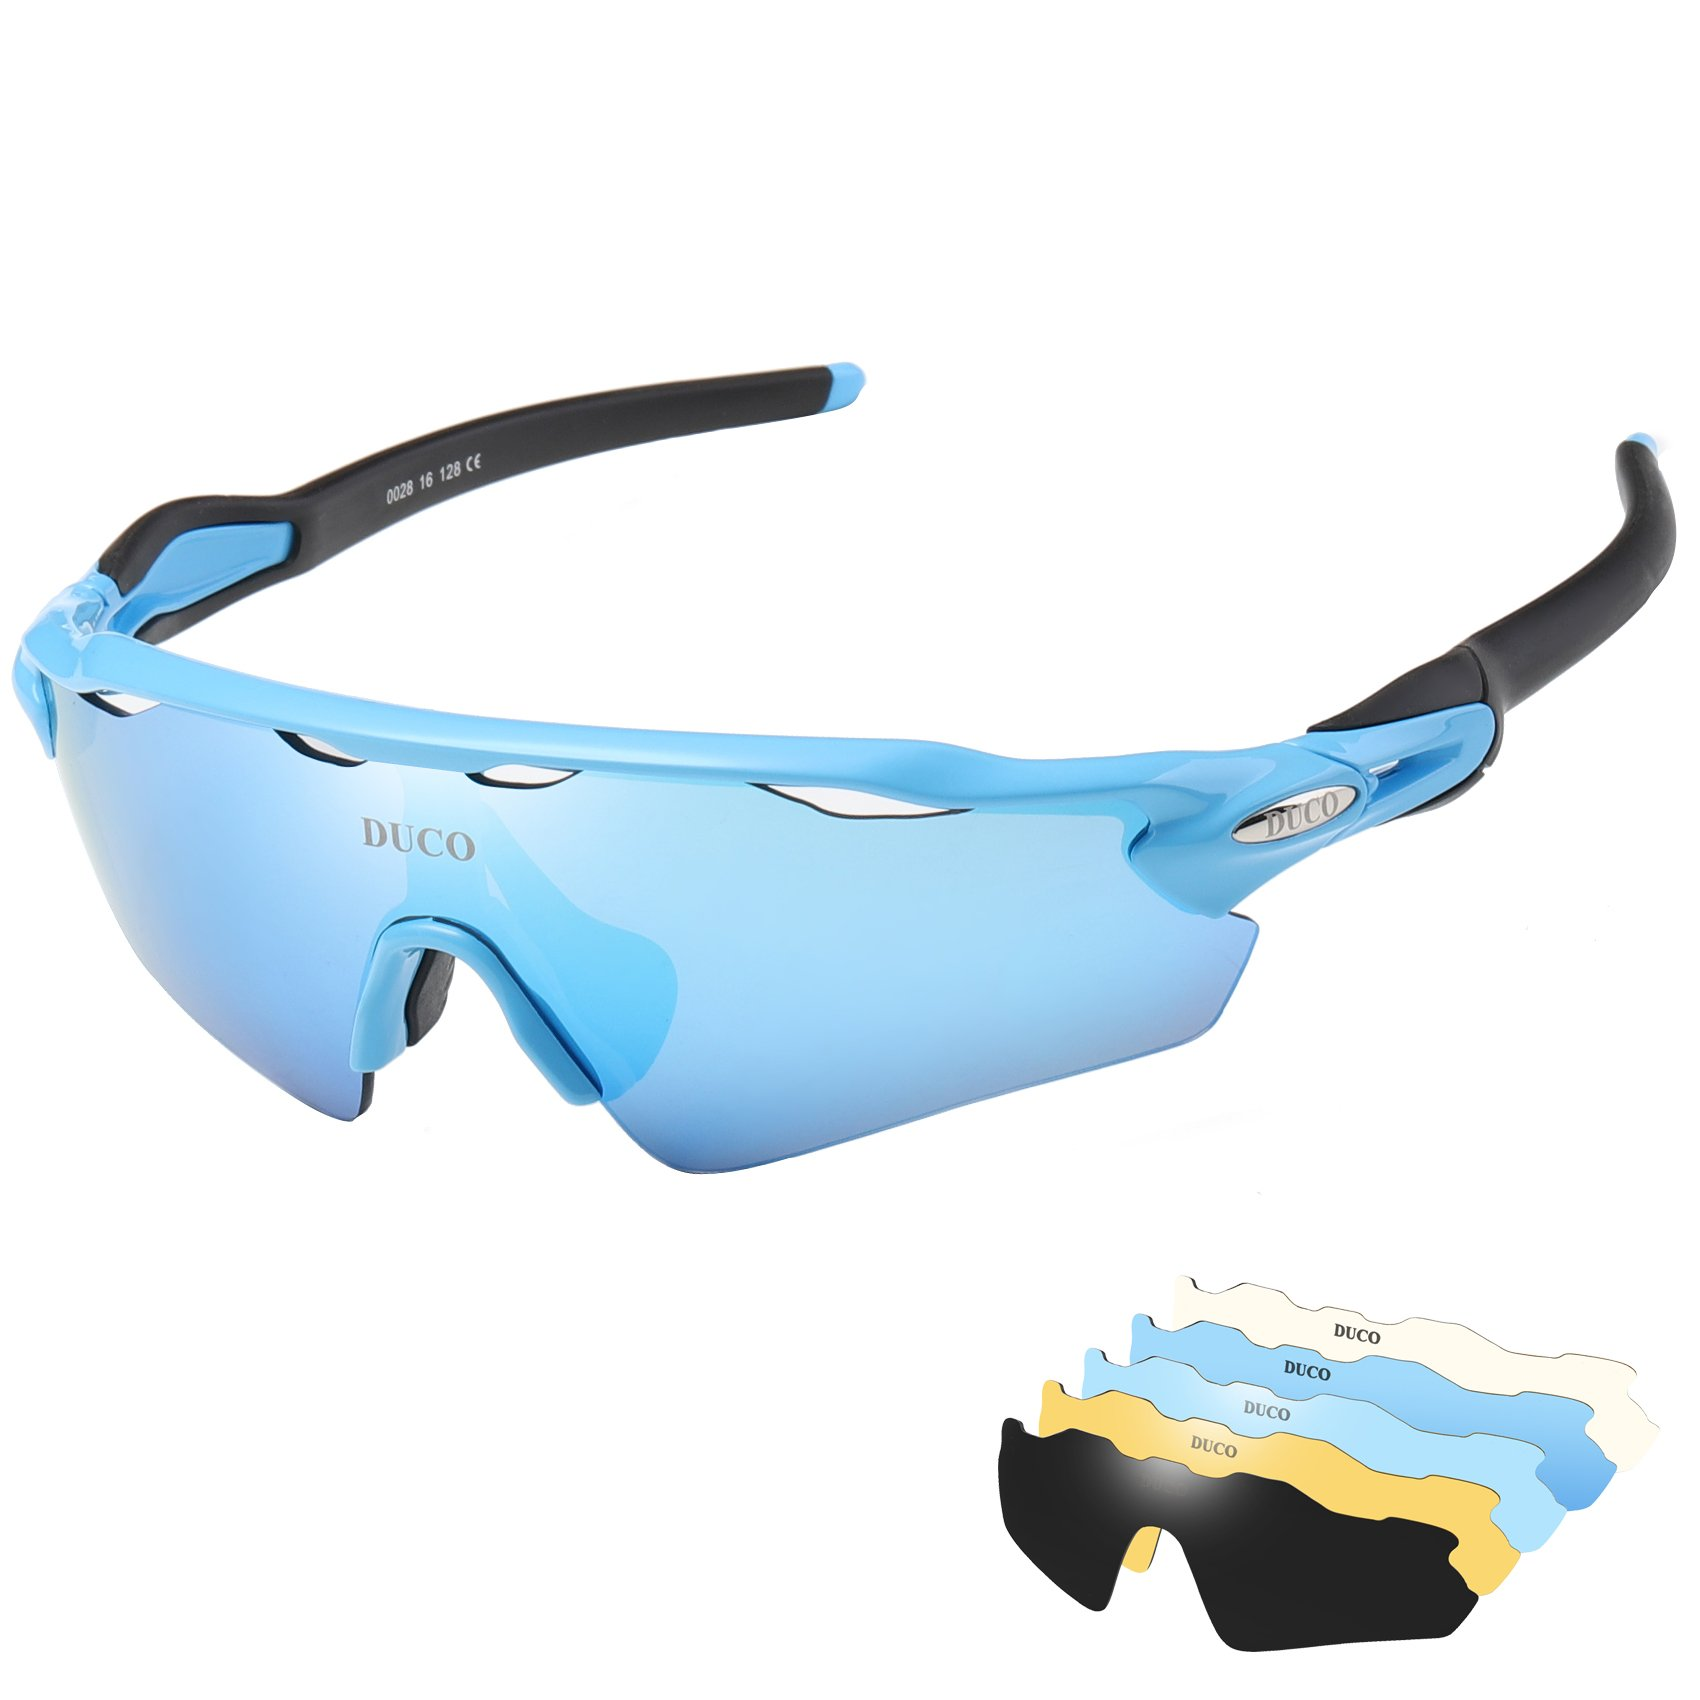 5ad878d8cb0 Polarized Sports Sunglasses Cycling Glasses with 5 Interchangeable Lenses  (Blue) product image